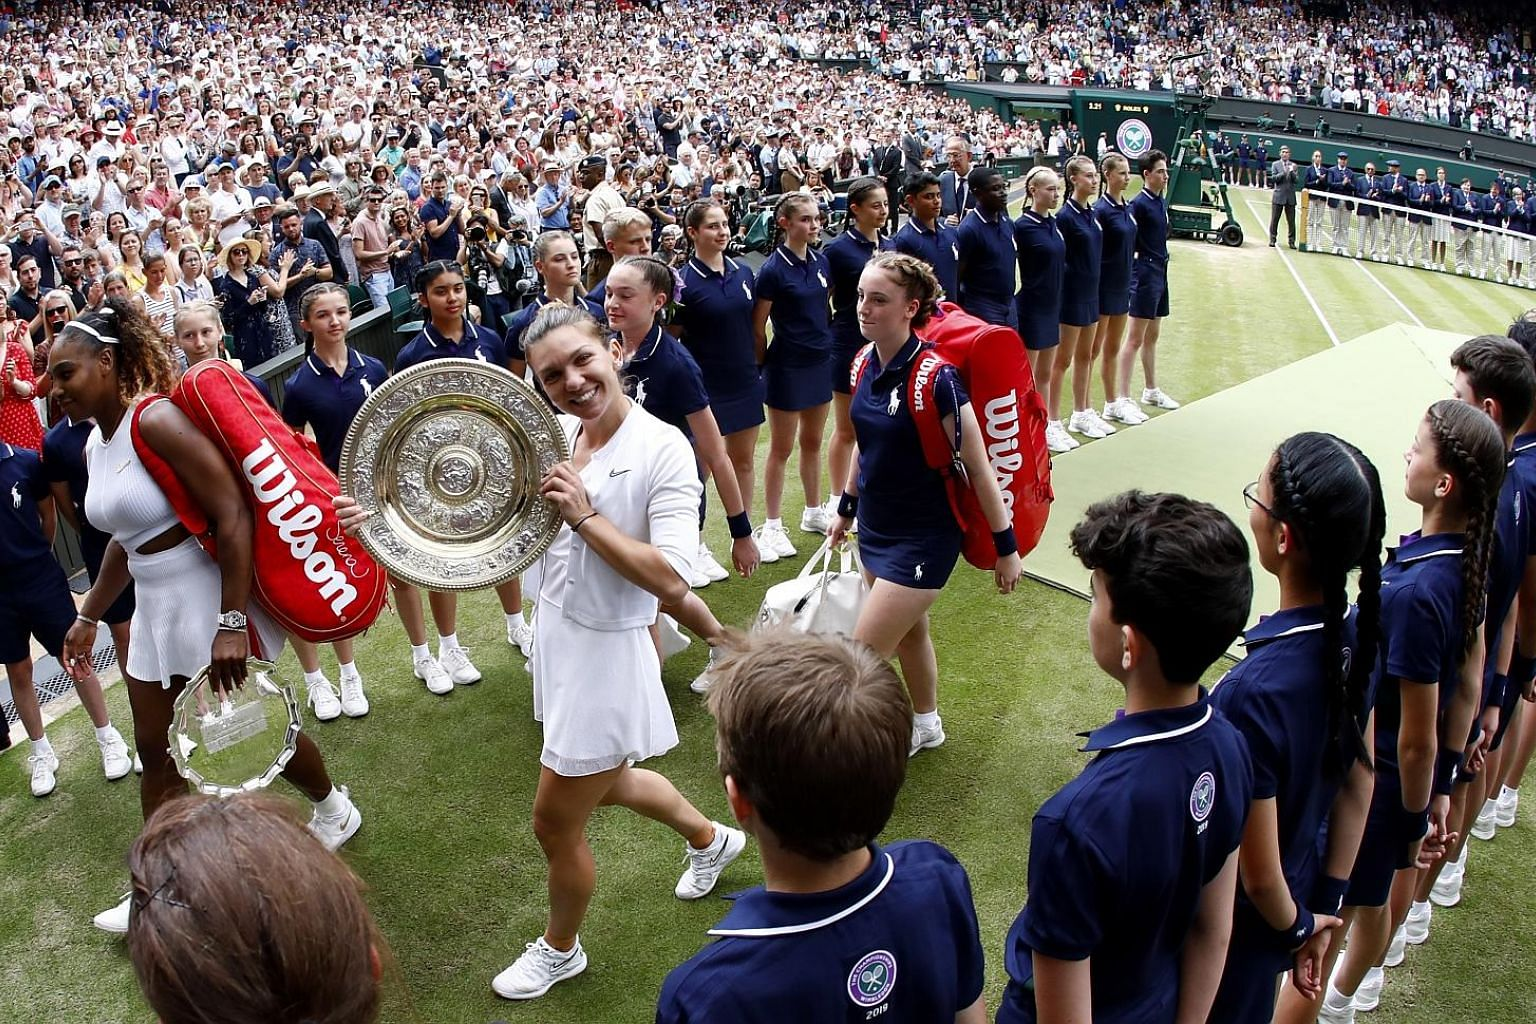 A beaming Simona Halep showing off the winner's Venus Rosewater Dish as she and losing finalist Serena Williams leave Wimbledon's Centre Court after the final yesterday. Halep's 6-2, 6-2 victory made her the first Romanian woman to win the Wimbledon title